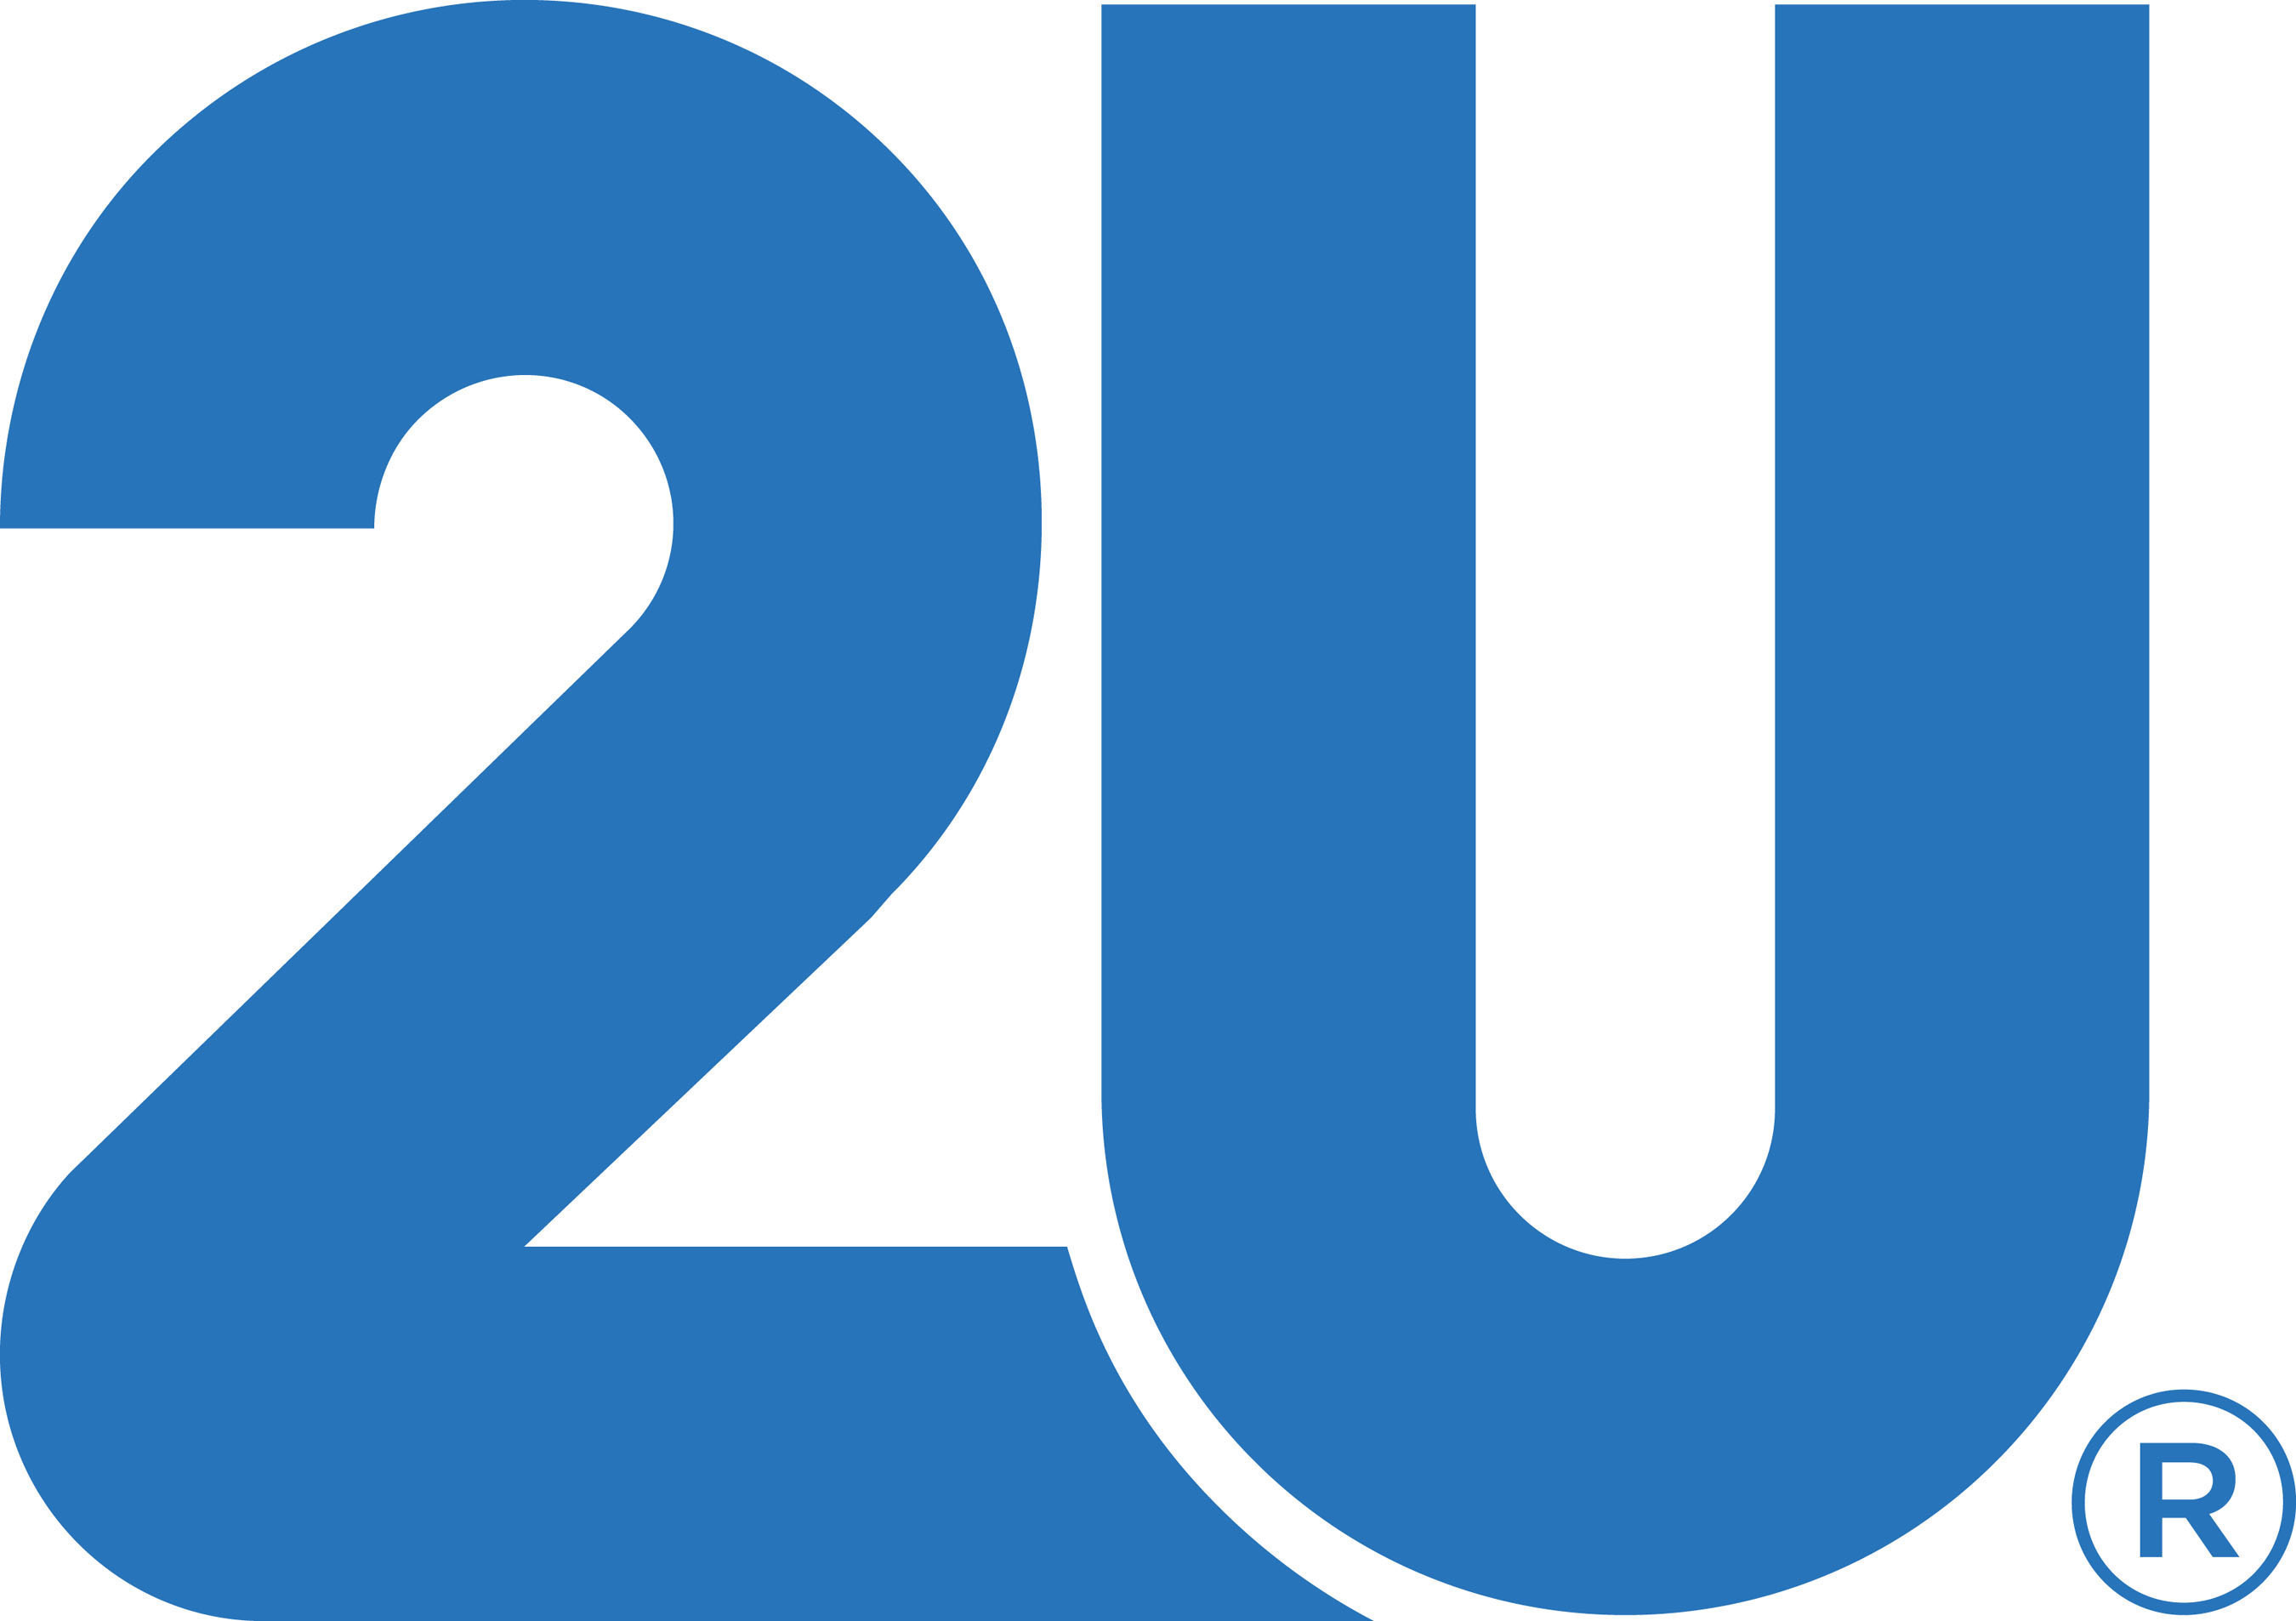 The Washington Post Names 2U a Top Workplace for Third Consecutive Year